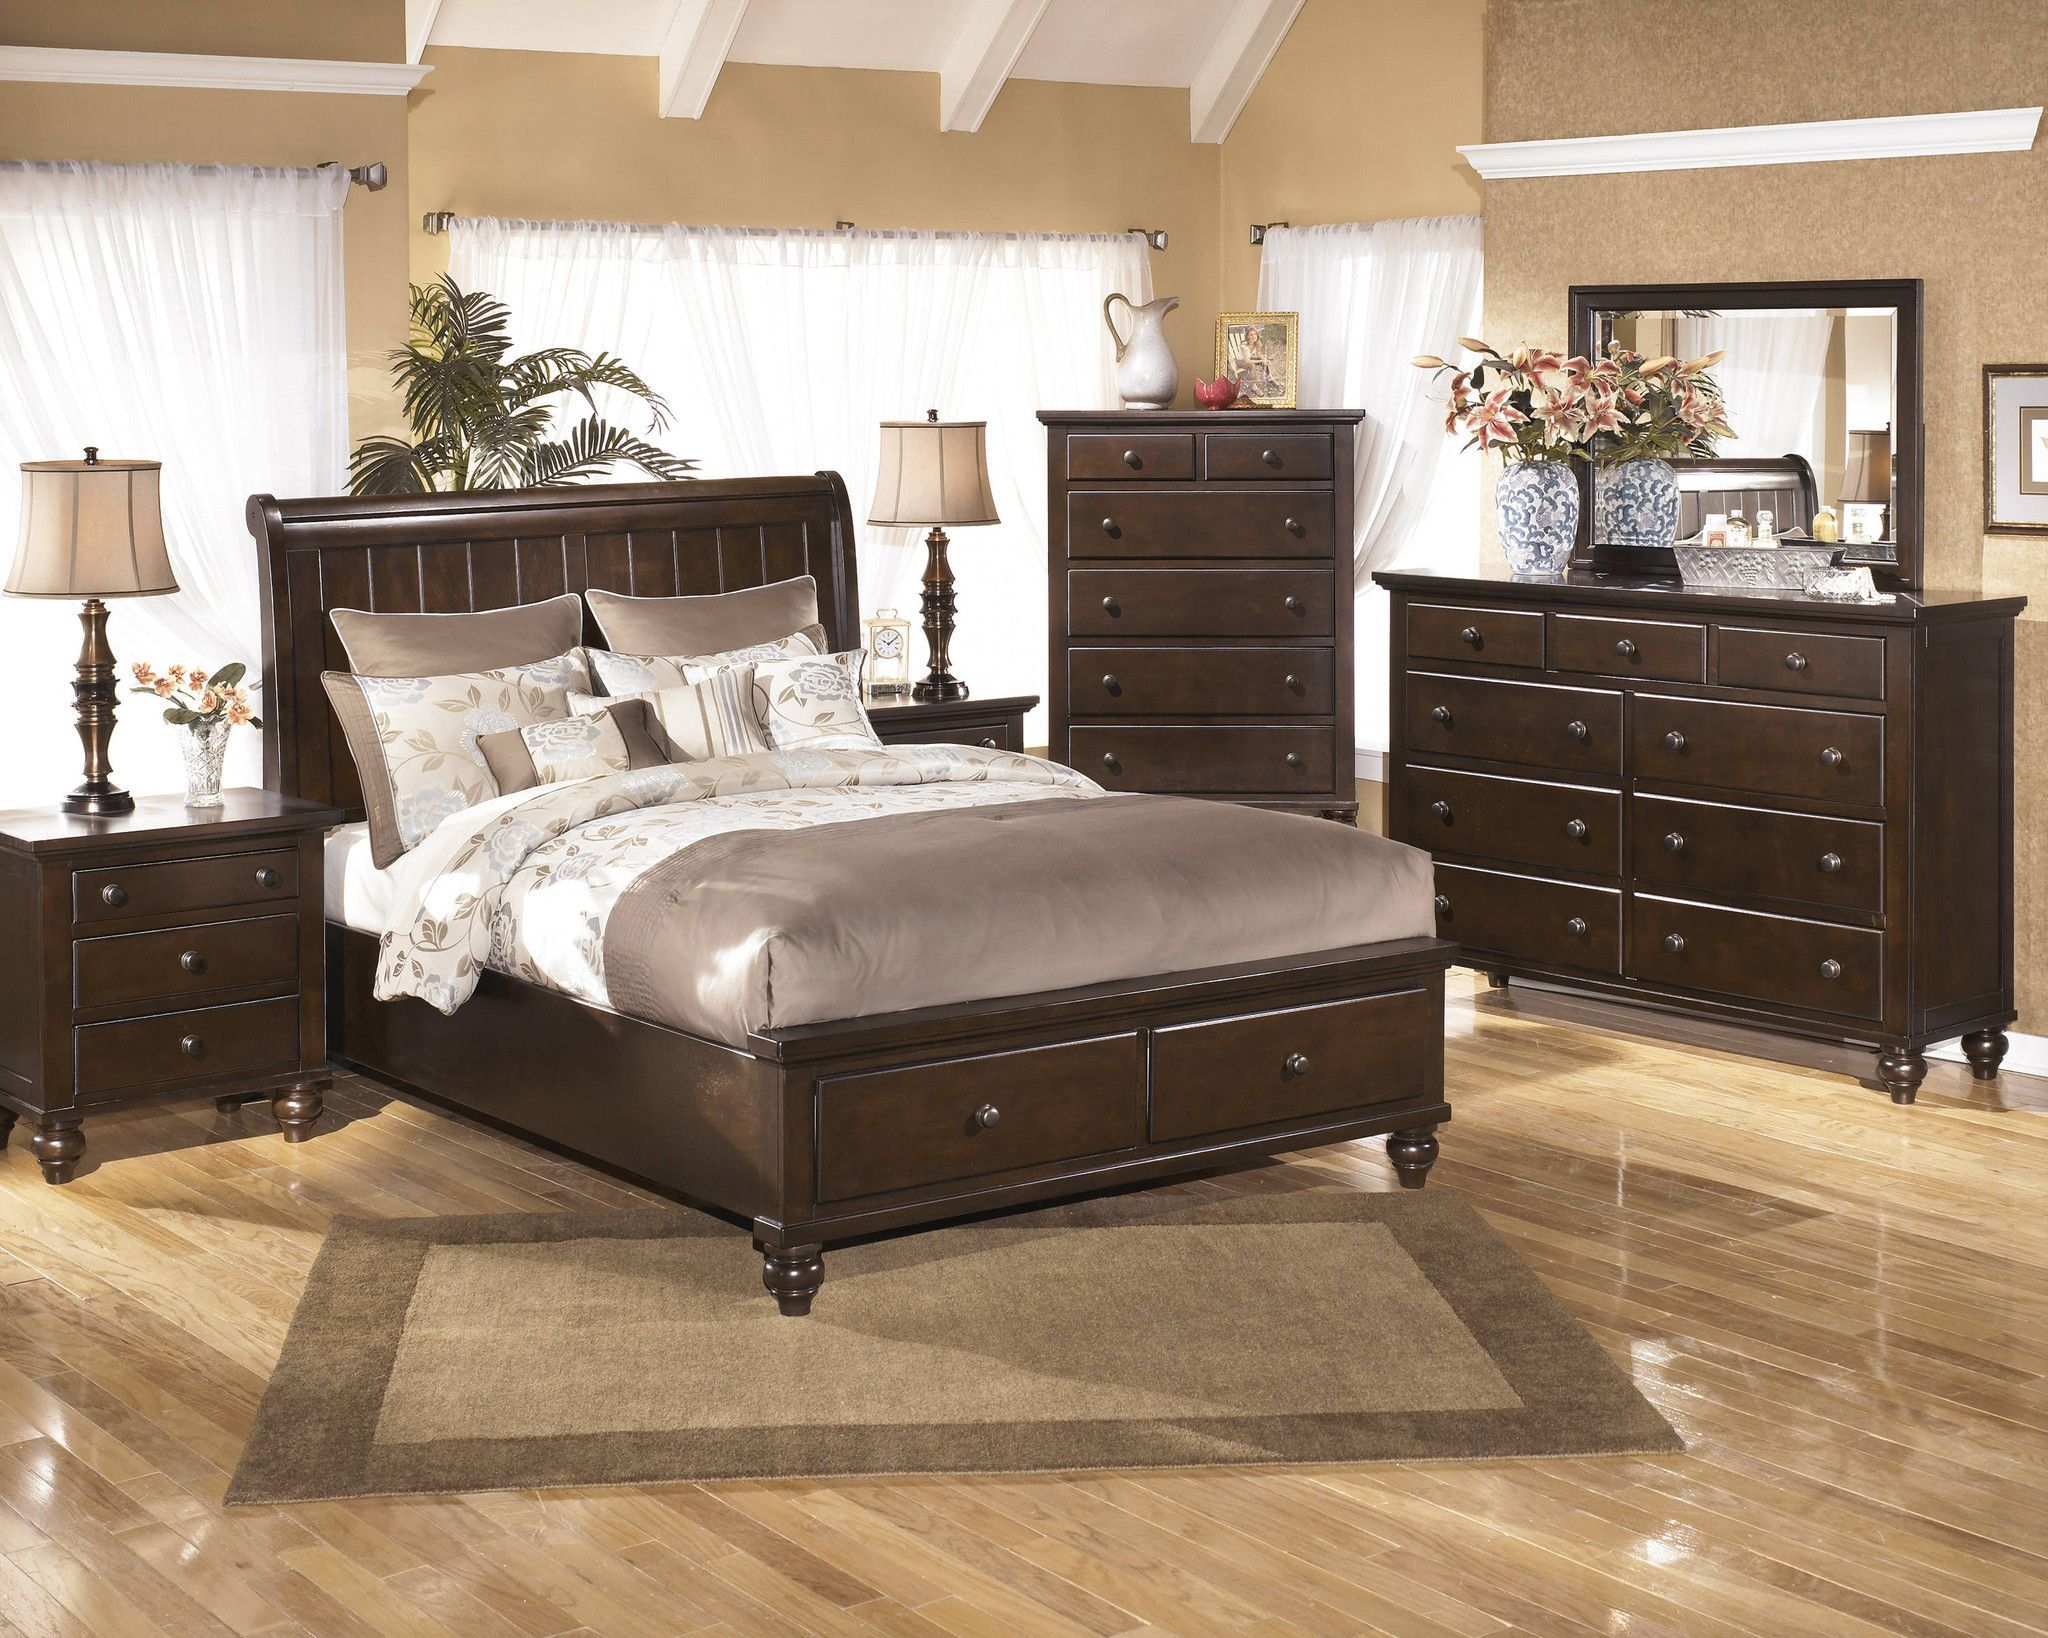 camdyn storage king bedroom set by ashley furniture